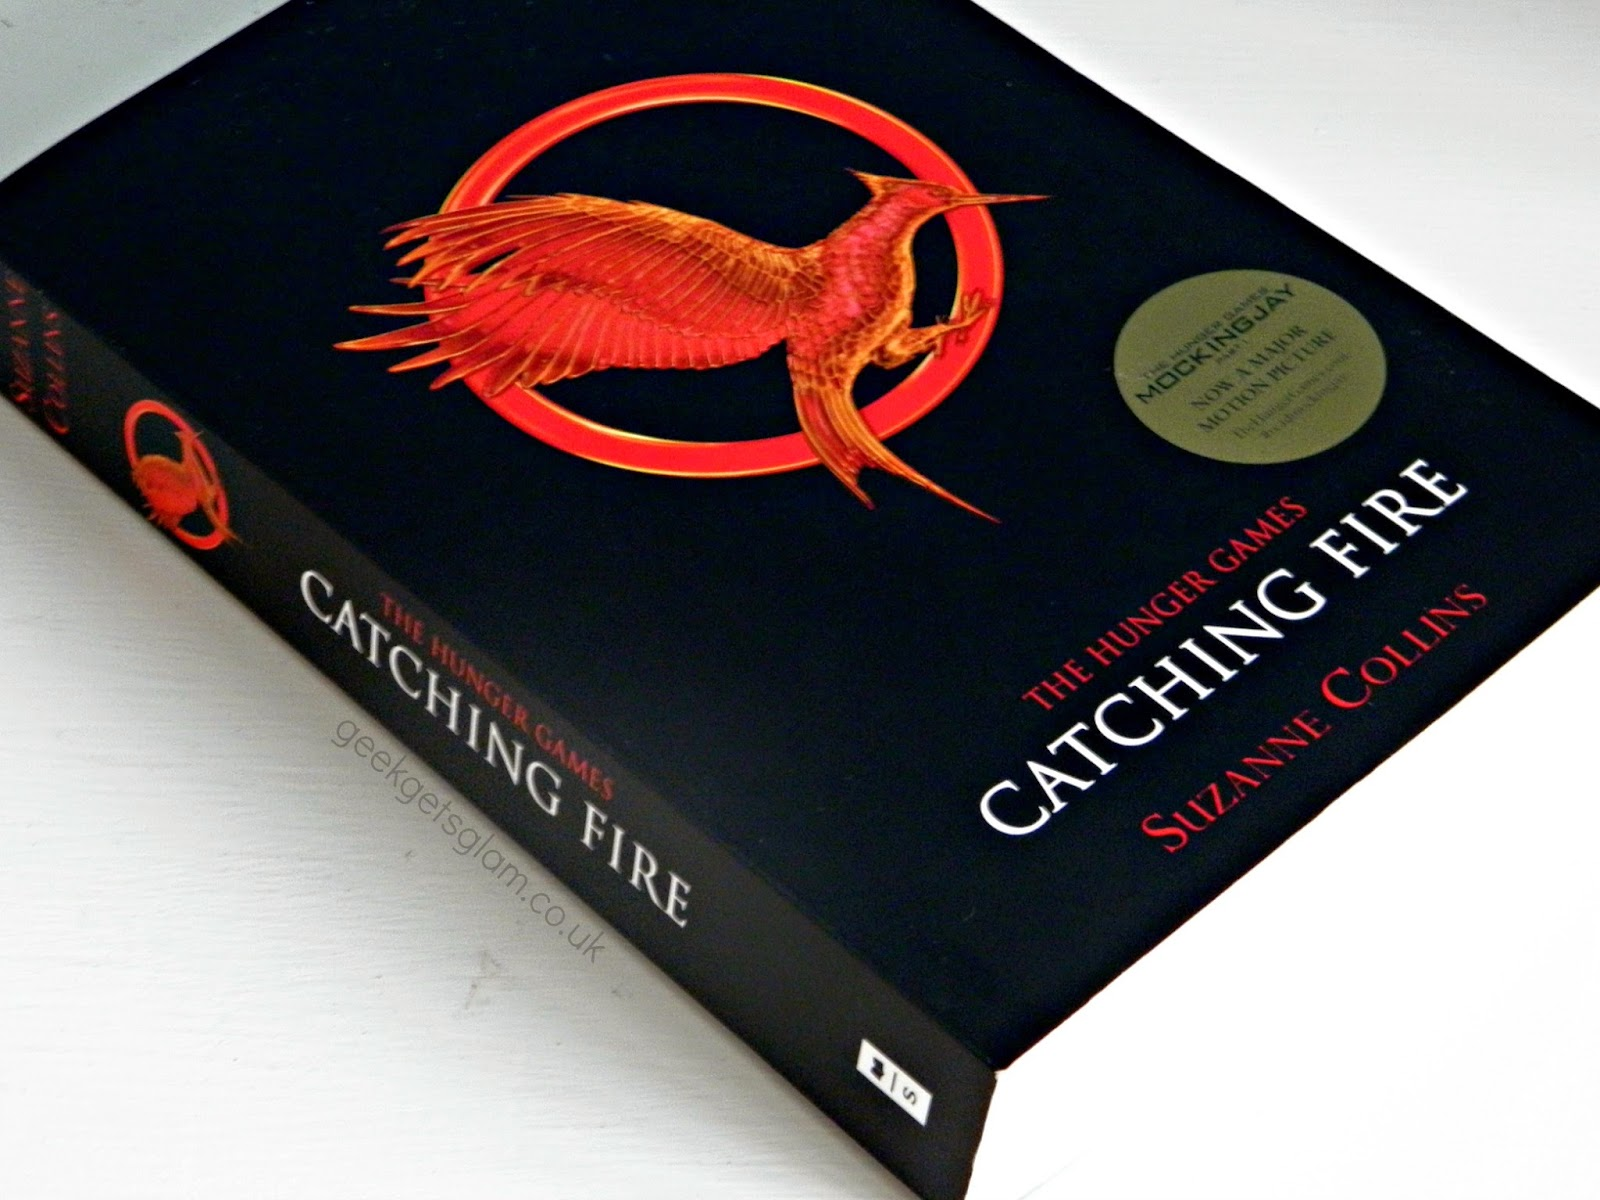 catching fire by suzanne collins essay Catching fire by suzanne collins  catching fire teaching nit questions for essay and discussion 1 the rebellion against the.